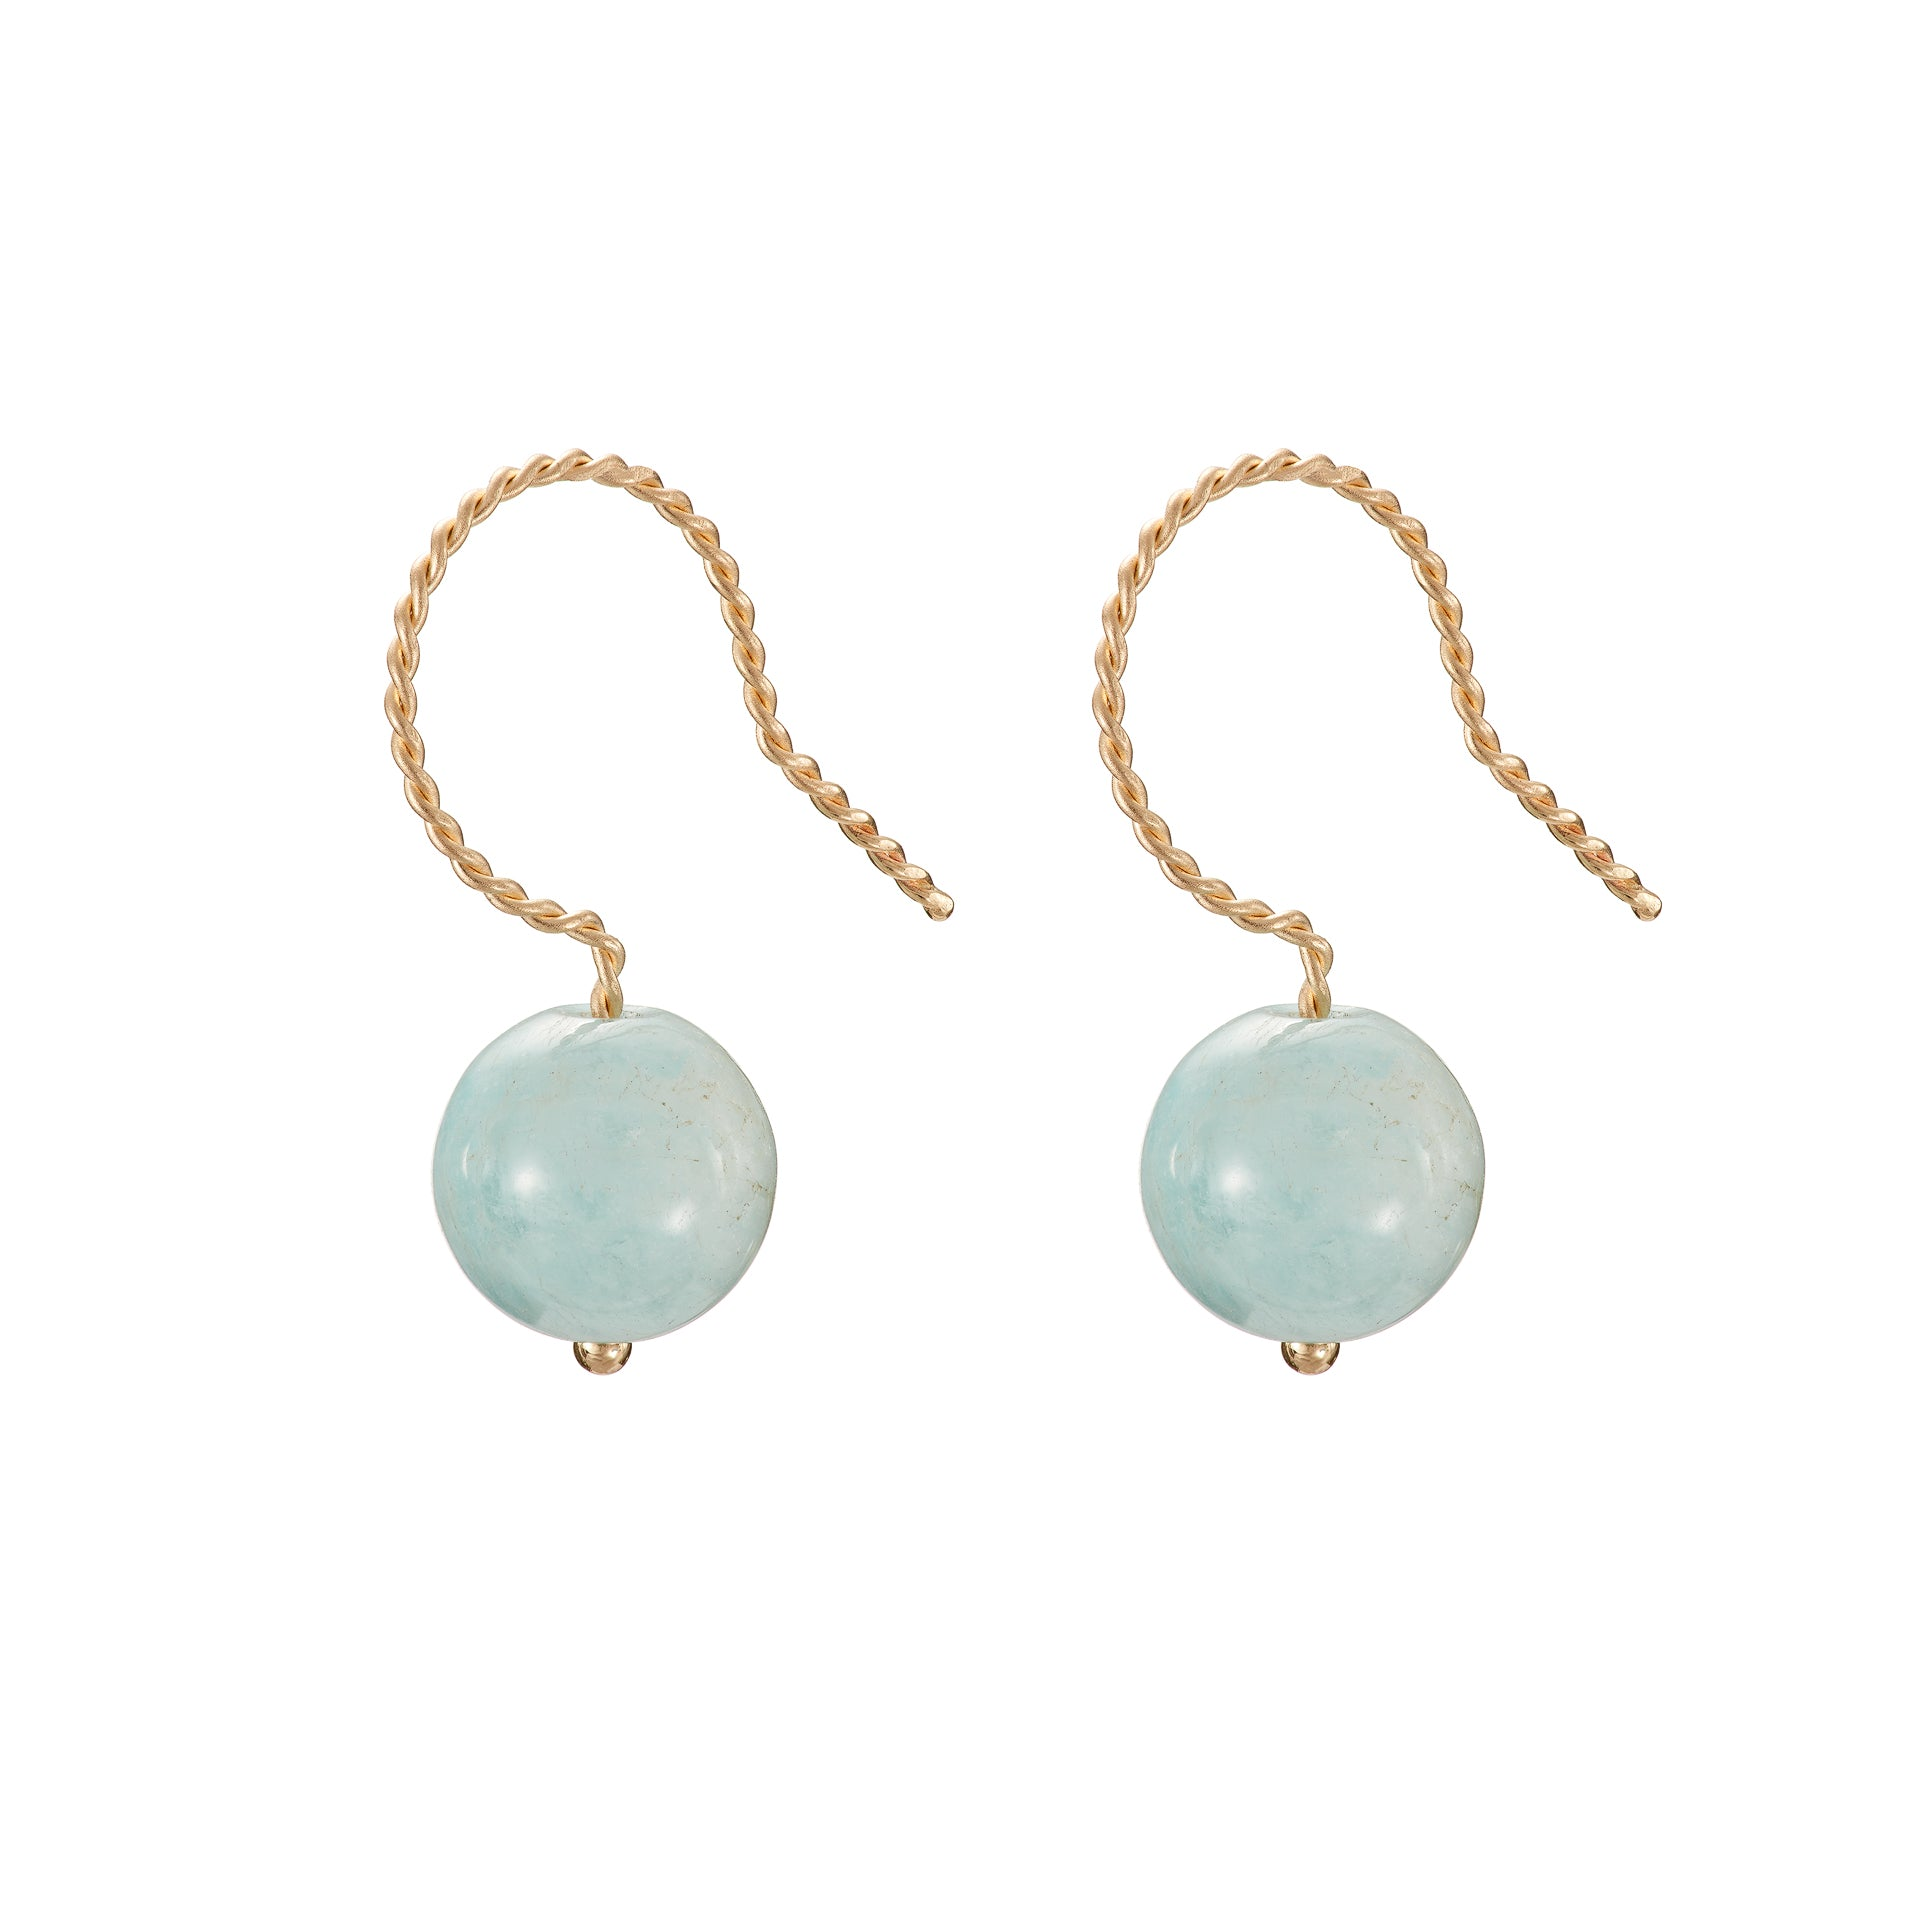 Solo Drop Earring - Aquamarine (Blue Beryl)